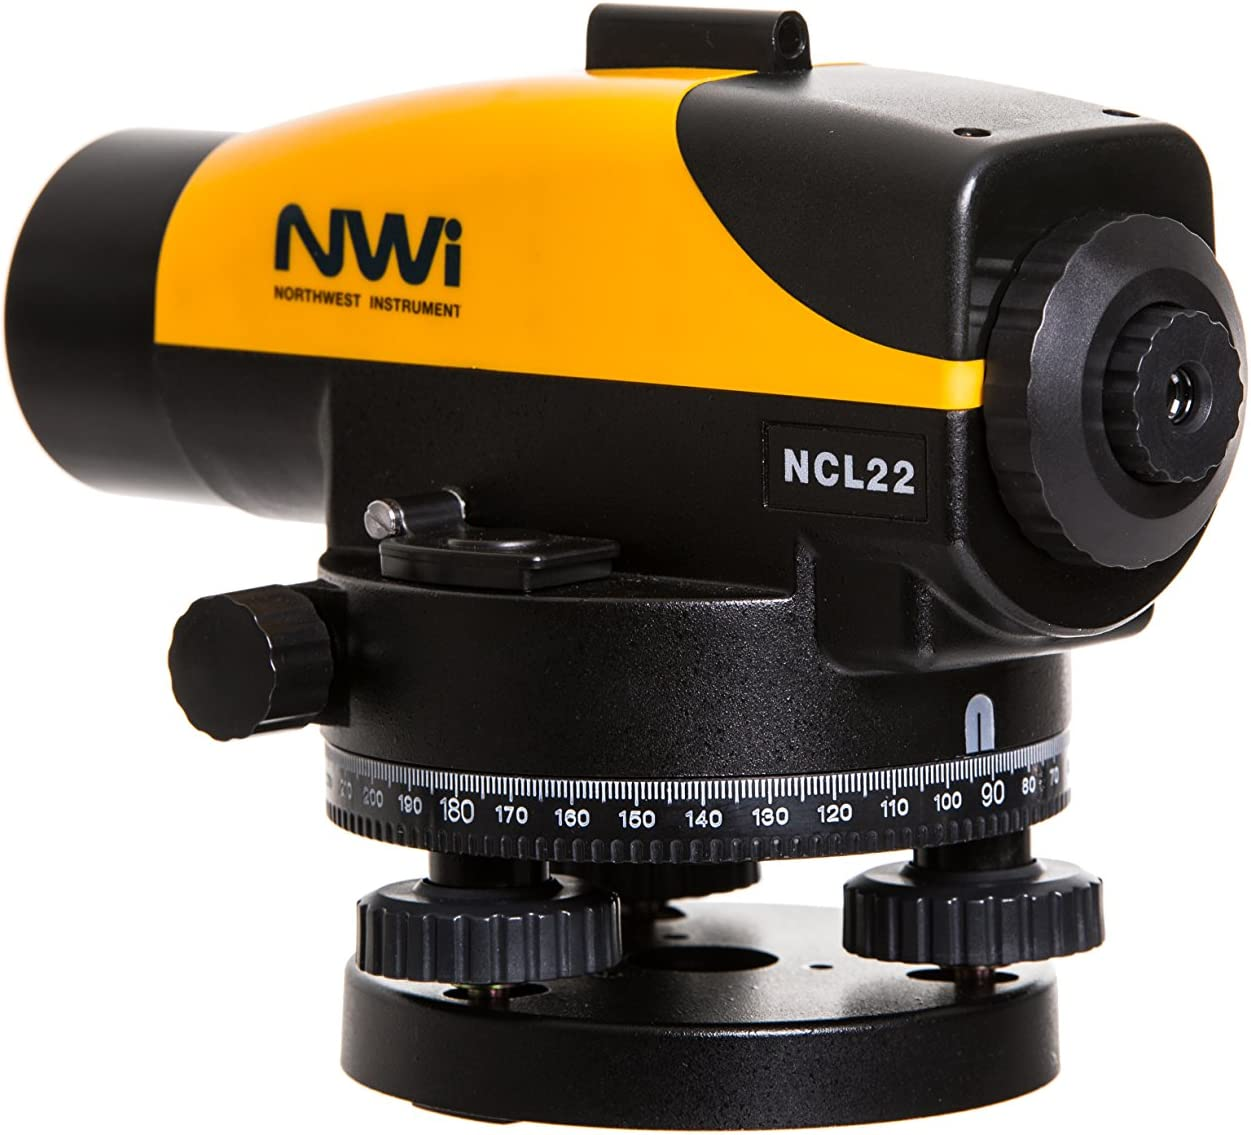 NWI NCLP22 22x Contractors Automatic Level Package